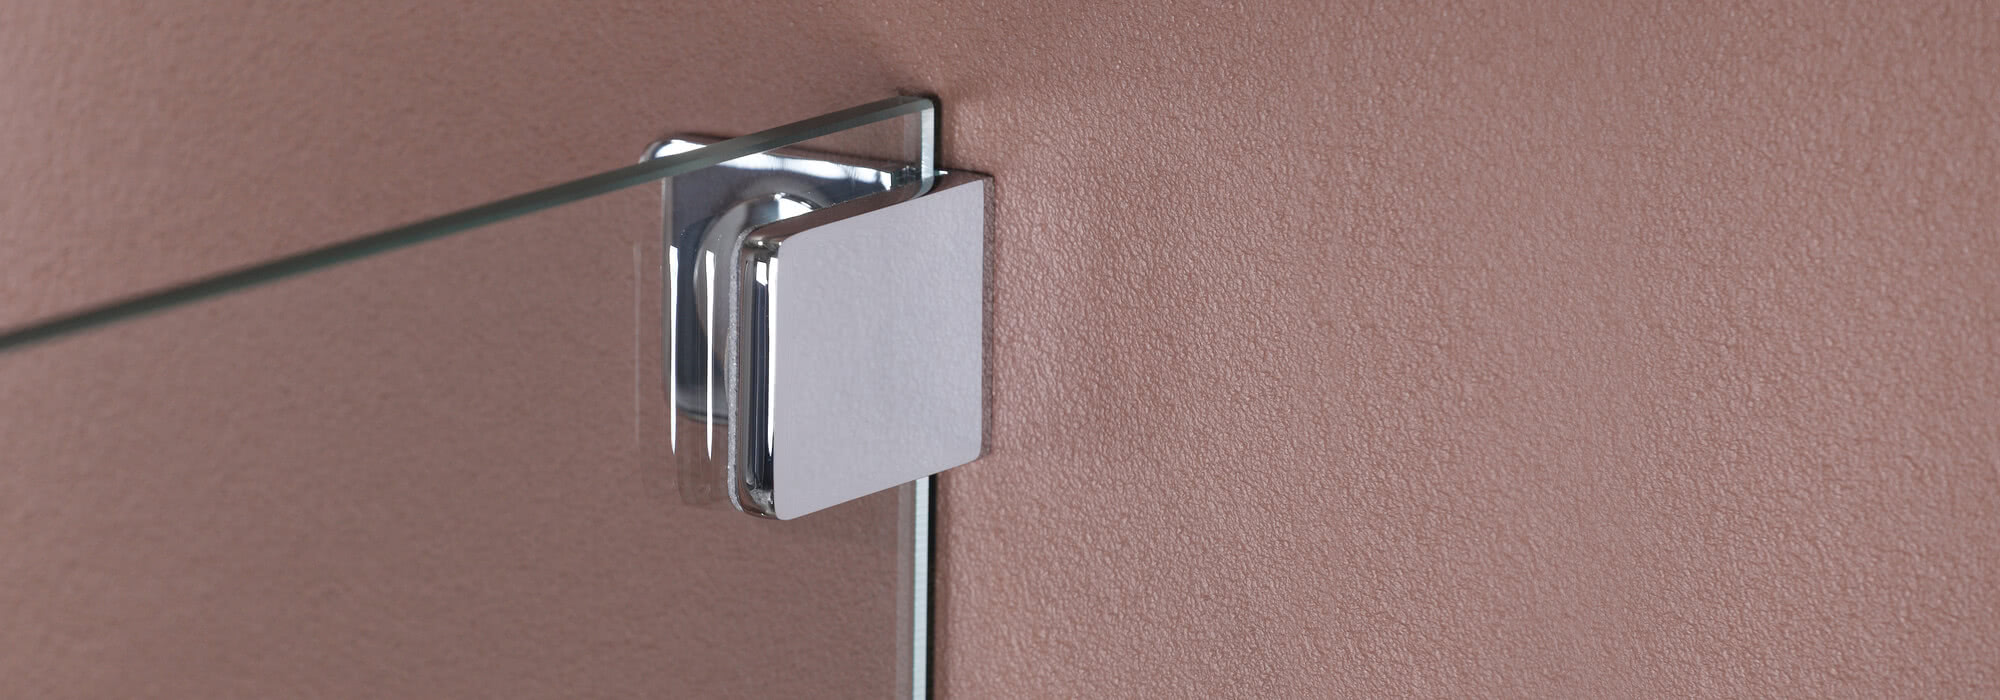 Sprinz offers various options for fixing a glass shower to the wall, for example with a wall bracket